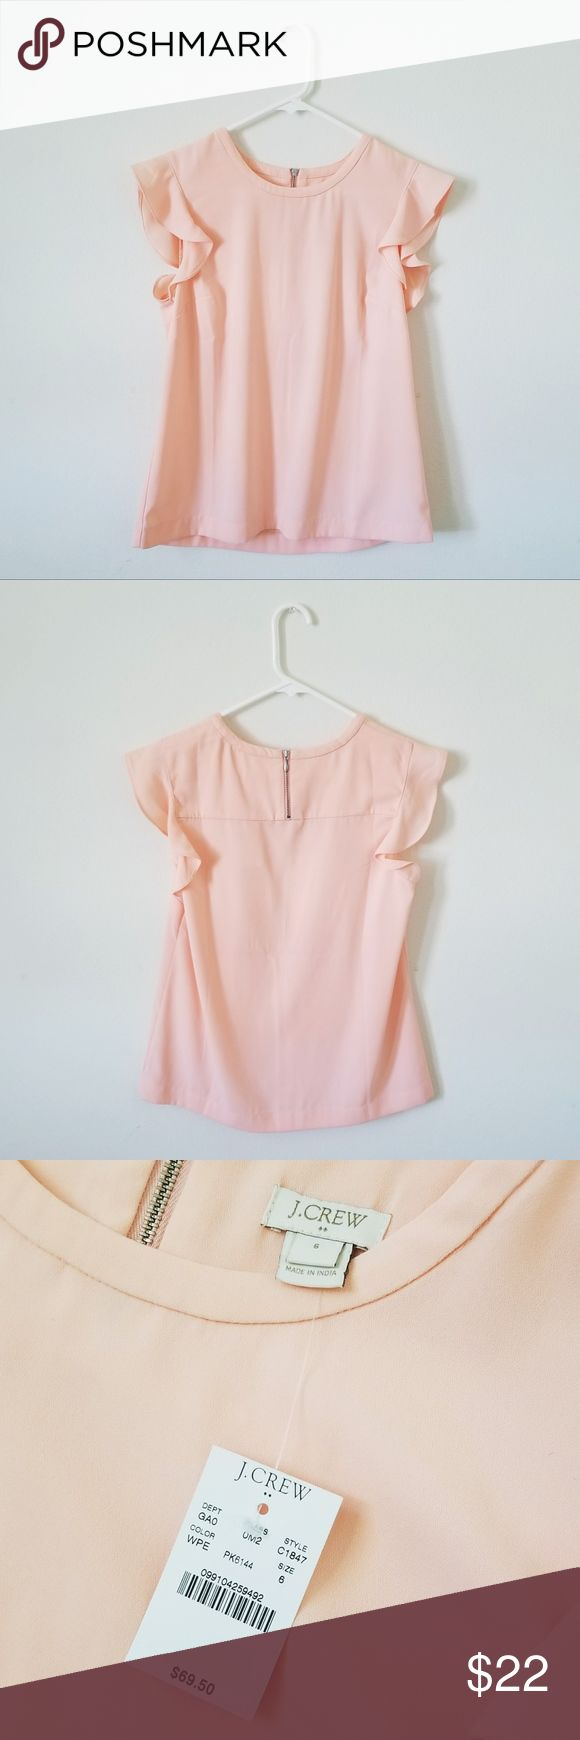 NWT J Crew Factory Flutter Sleeve Top +New with tags. +Women's size small/US 6. +Color is slightly more vibrant in real life. +Excellent condition. +Style: C1847 J. Crew Factory Tops